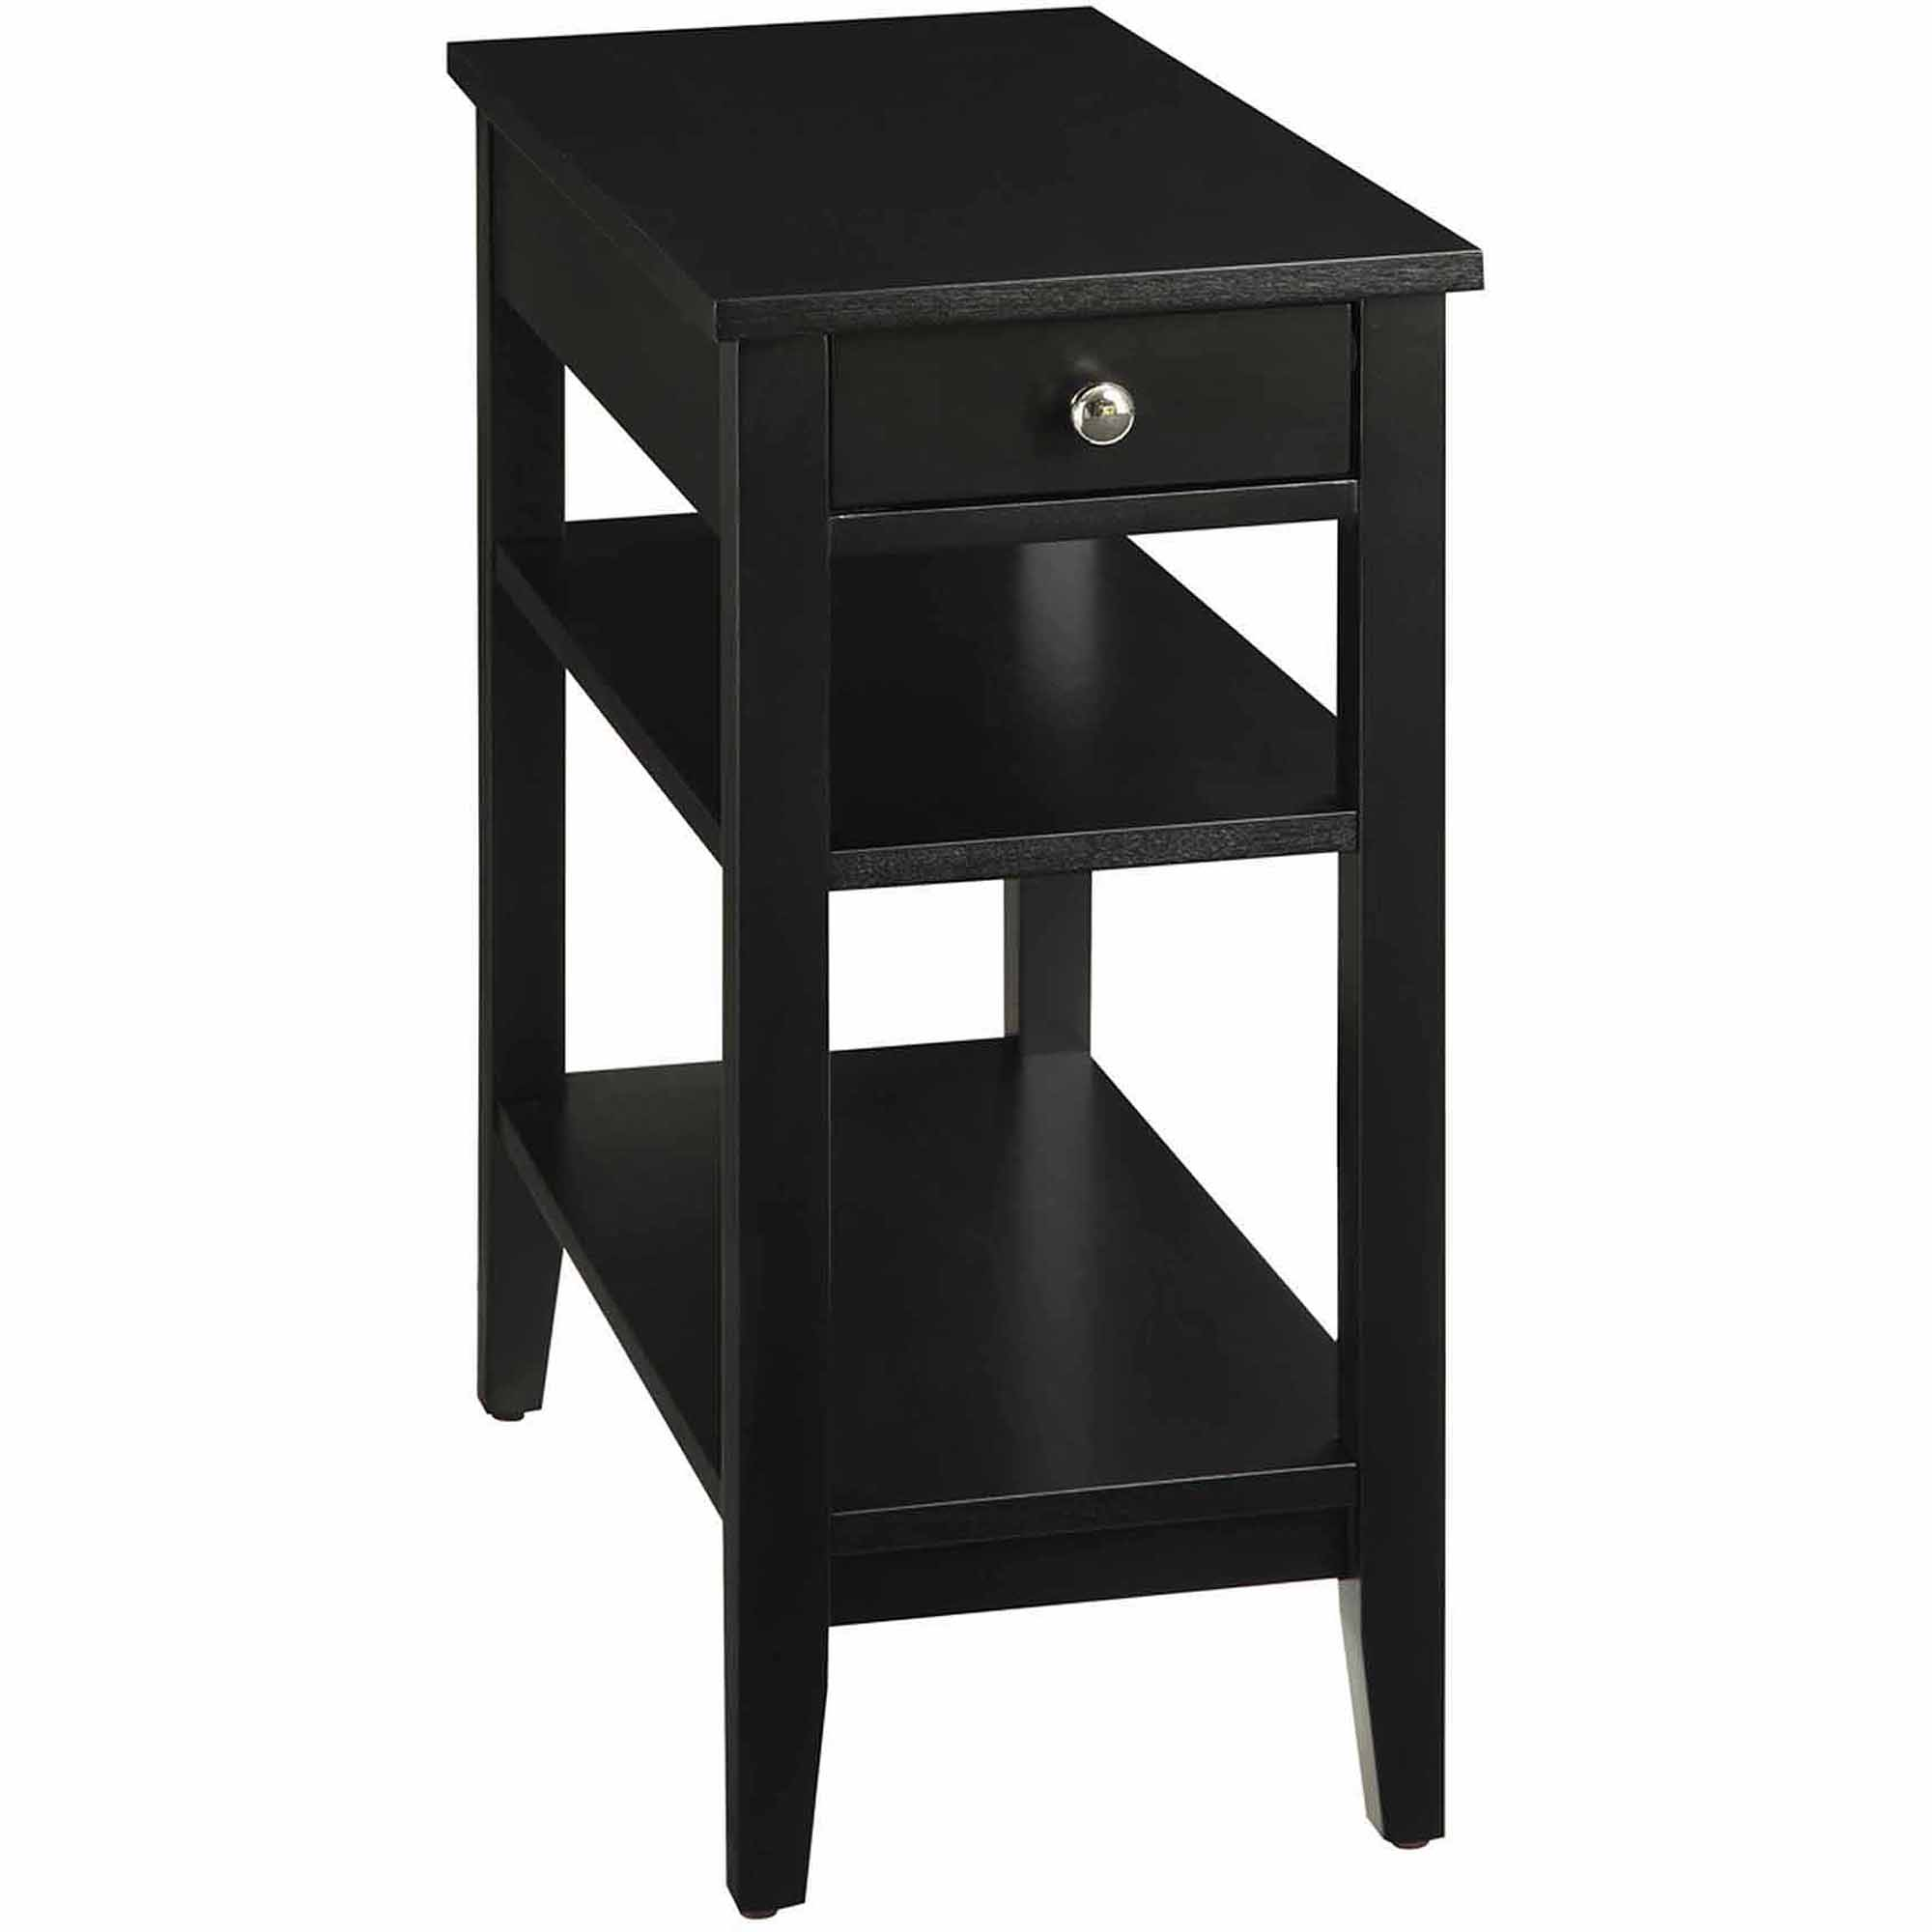 Tall End Tables With Drawers